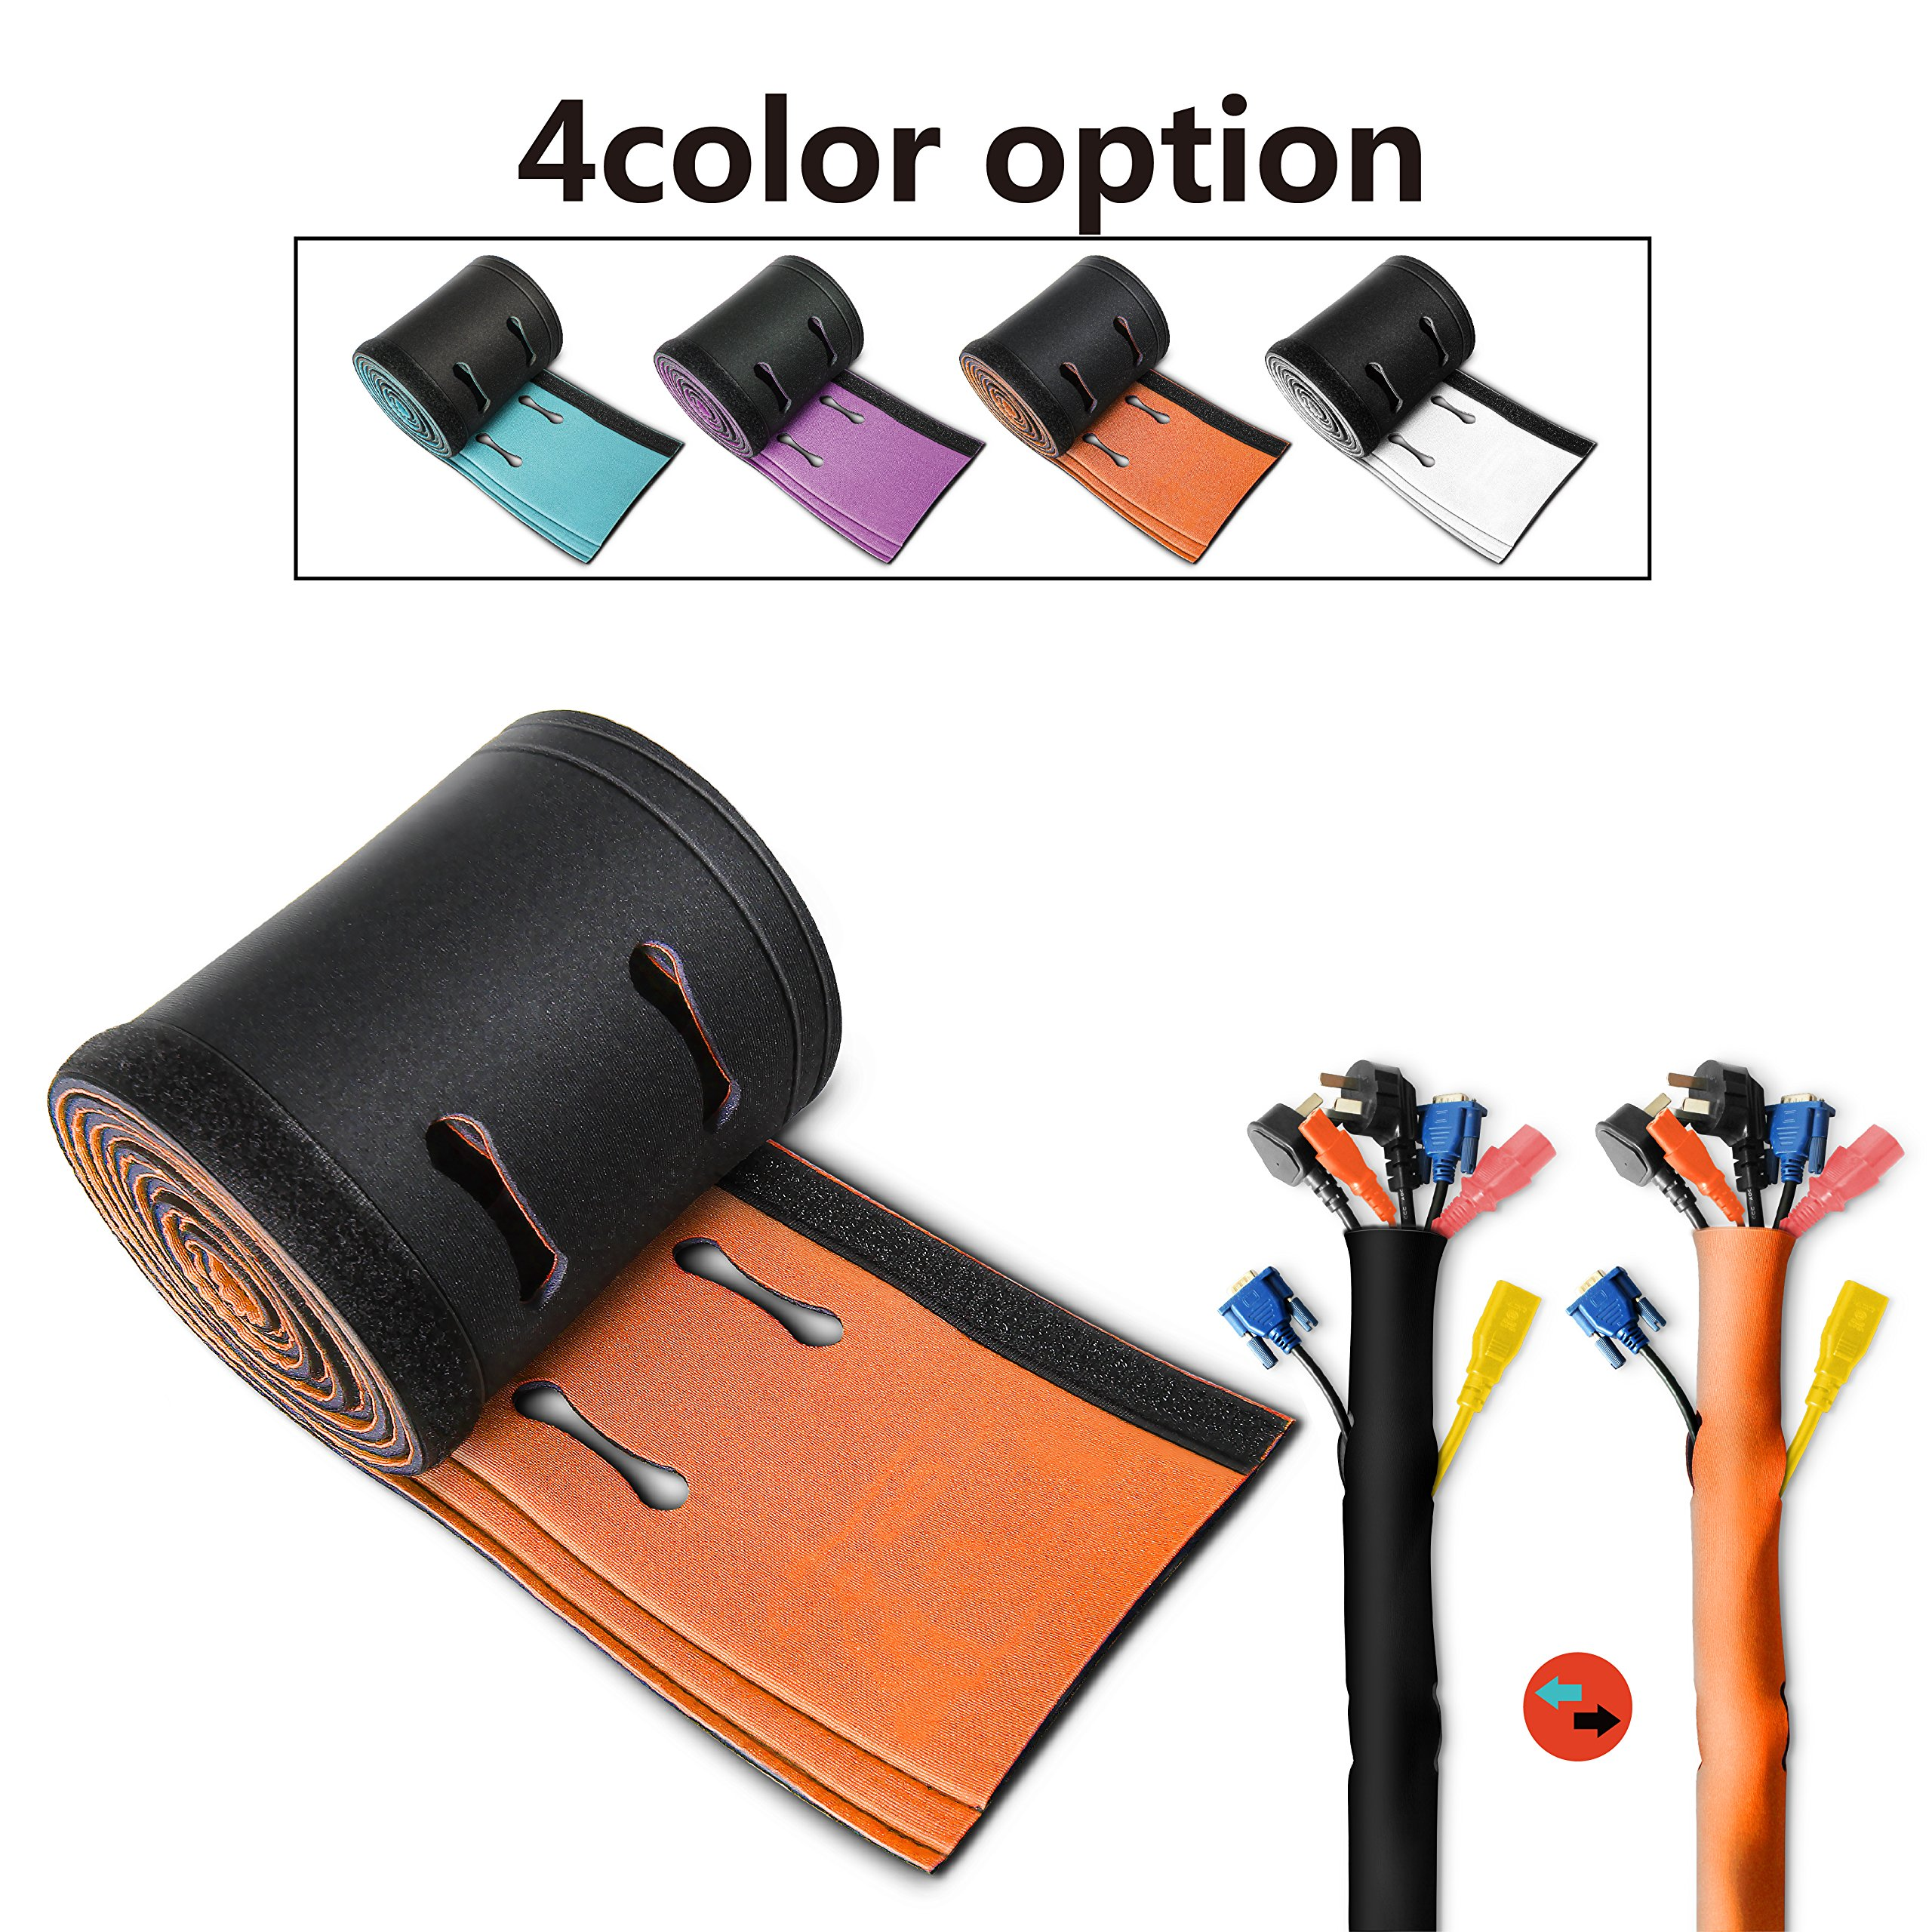 Computer Home and Office 102 Pieces Cable Wire Management Organizer Set Includes Adhesive Cable Clips Cable Ties Cable Cord Management Sleeve with Zipper Organizer Rope Holder for TV